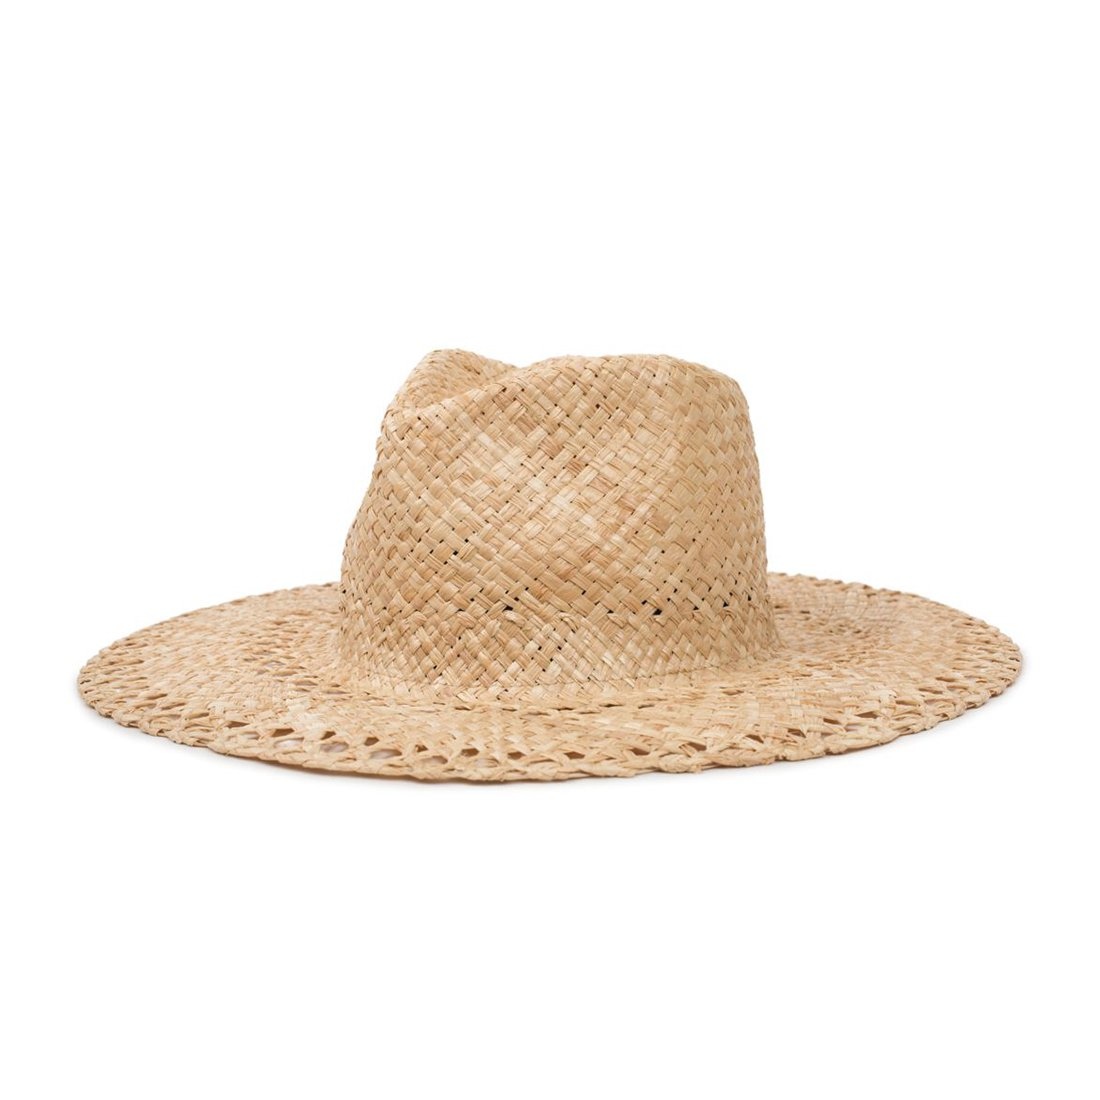 BRIXTON #HAMPTON FEDORA -TAN (Women's)